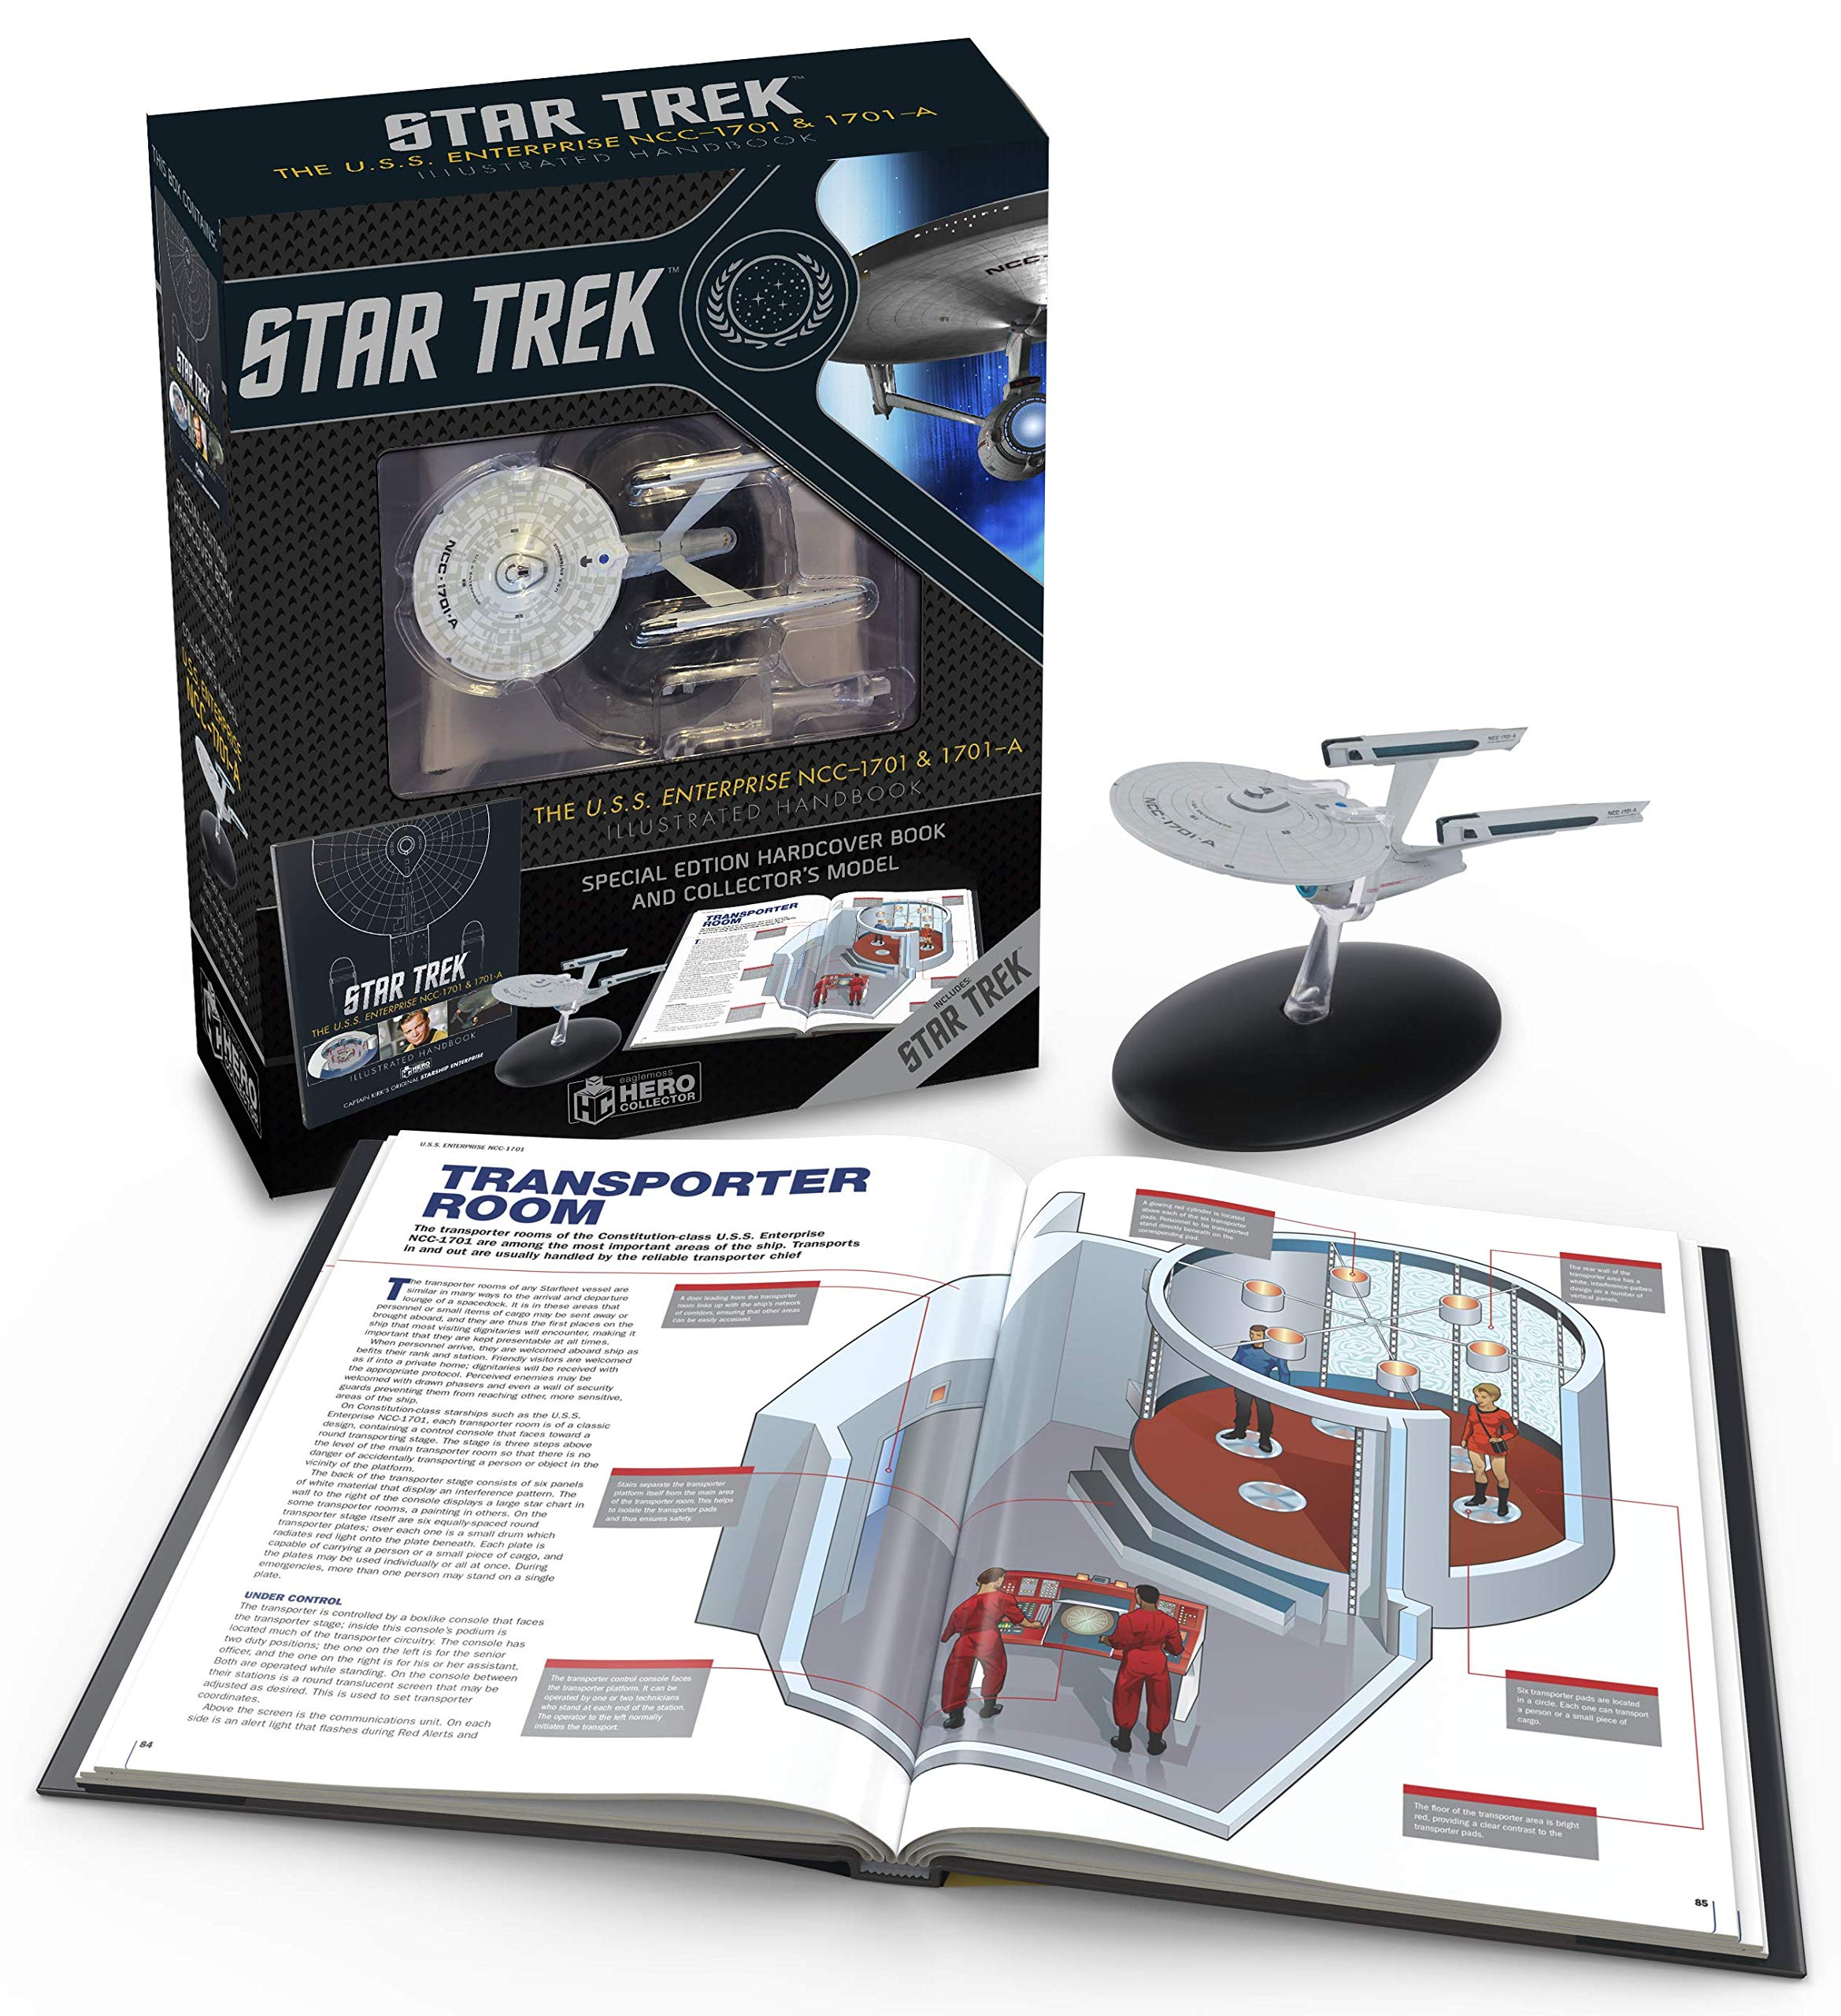 Pack: Star Trek. The U.S.S. Enterprise NCC-1701. Illustrated Handbook + Collectible Star Trek Illustrated Handbook: Amazon.es: Robinson, Ben, Robinson, Ben: Libros en idiomas extranjeros